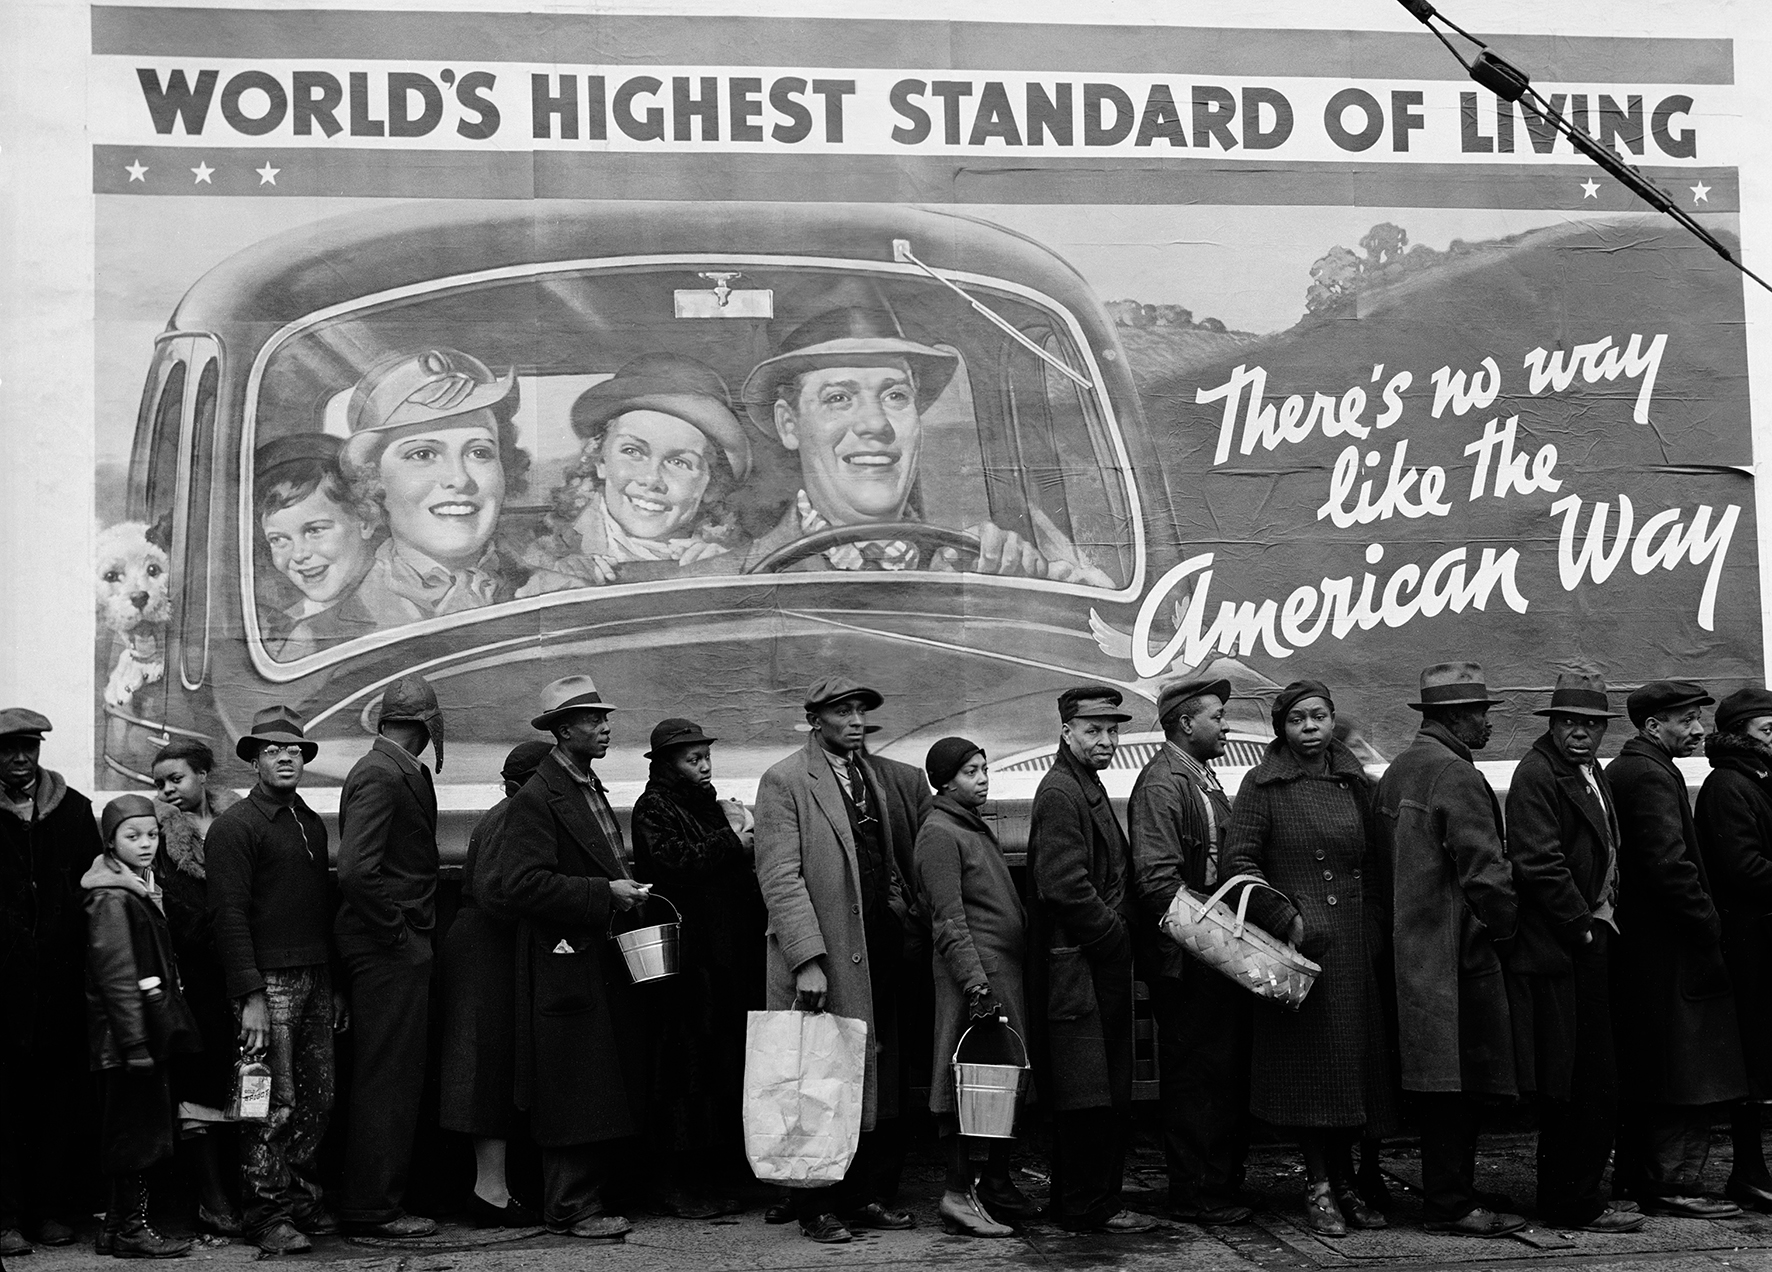 UNITED STATES - CIRCA 1937:  African American flood victims lining up to get food and clothing from a relief station in front of a billboard ironically proclaming WORLD'S HIGHEST STANDARD OF LIVING/THERE'S NO WAY LIKE THE AMERICAN WAY.  (Photo by Margaret Bourke-White/Time & Life Pictures/Getty Images)